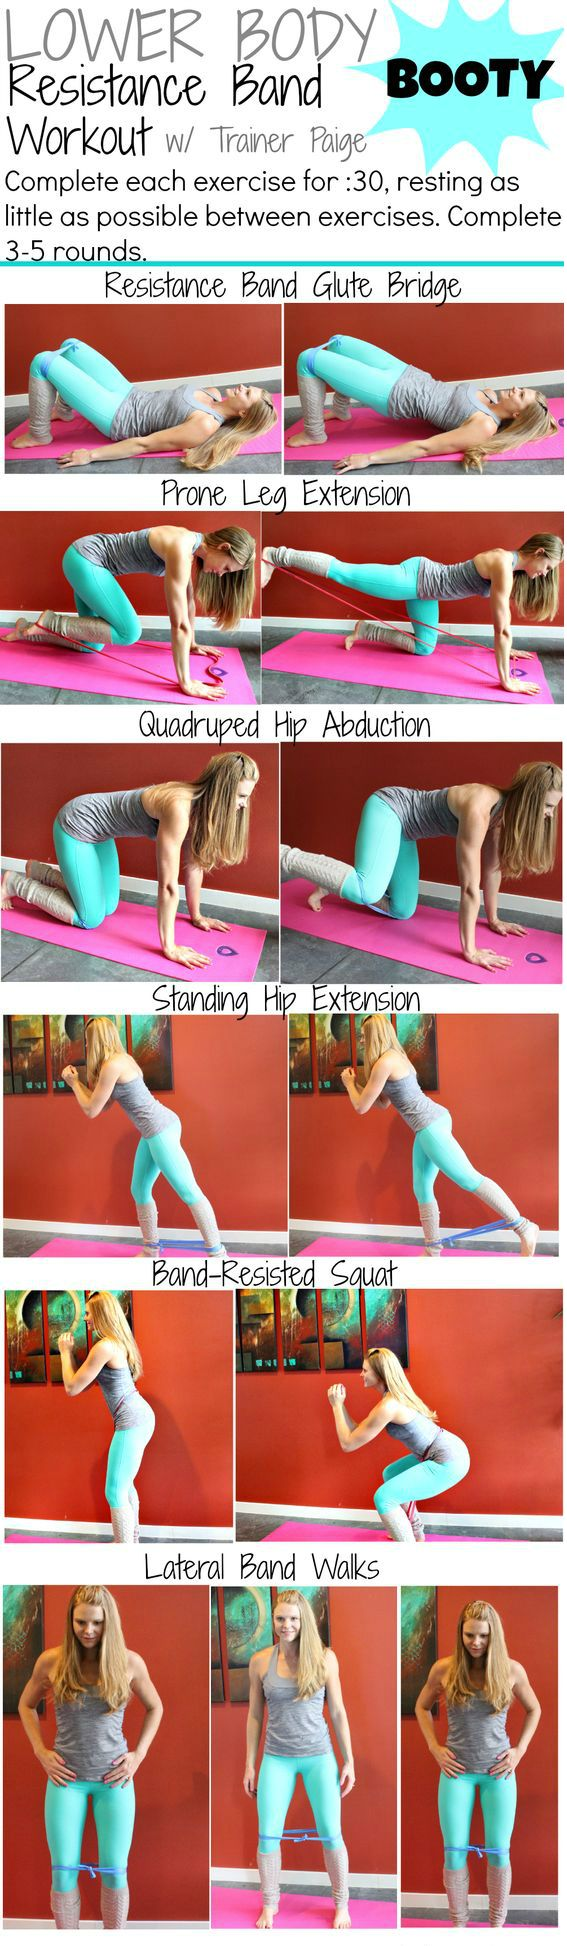 Resistance band workout to get strong legs, butt and core. These exercises will…